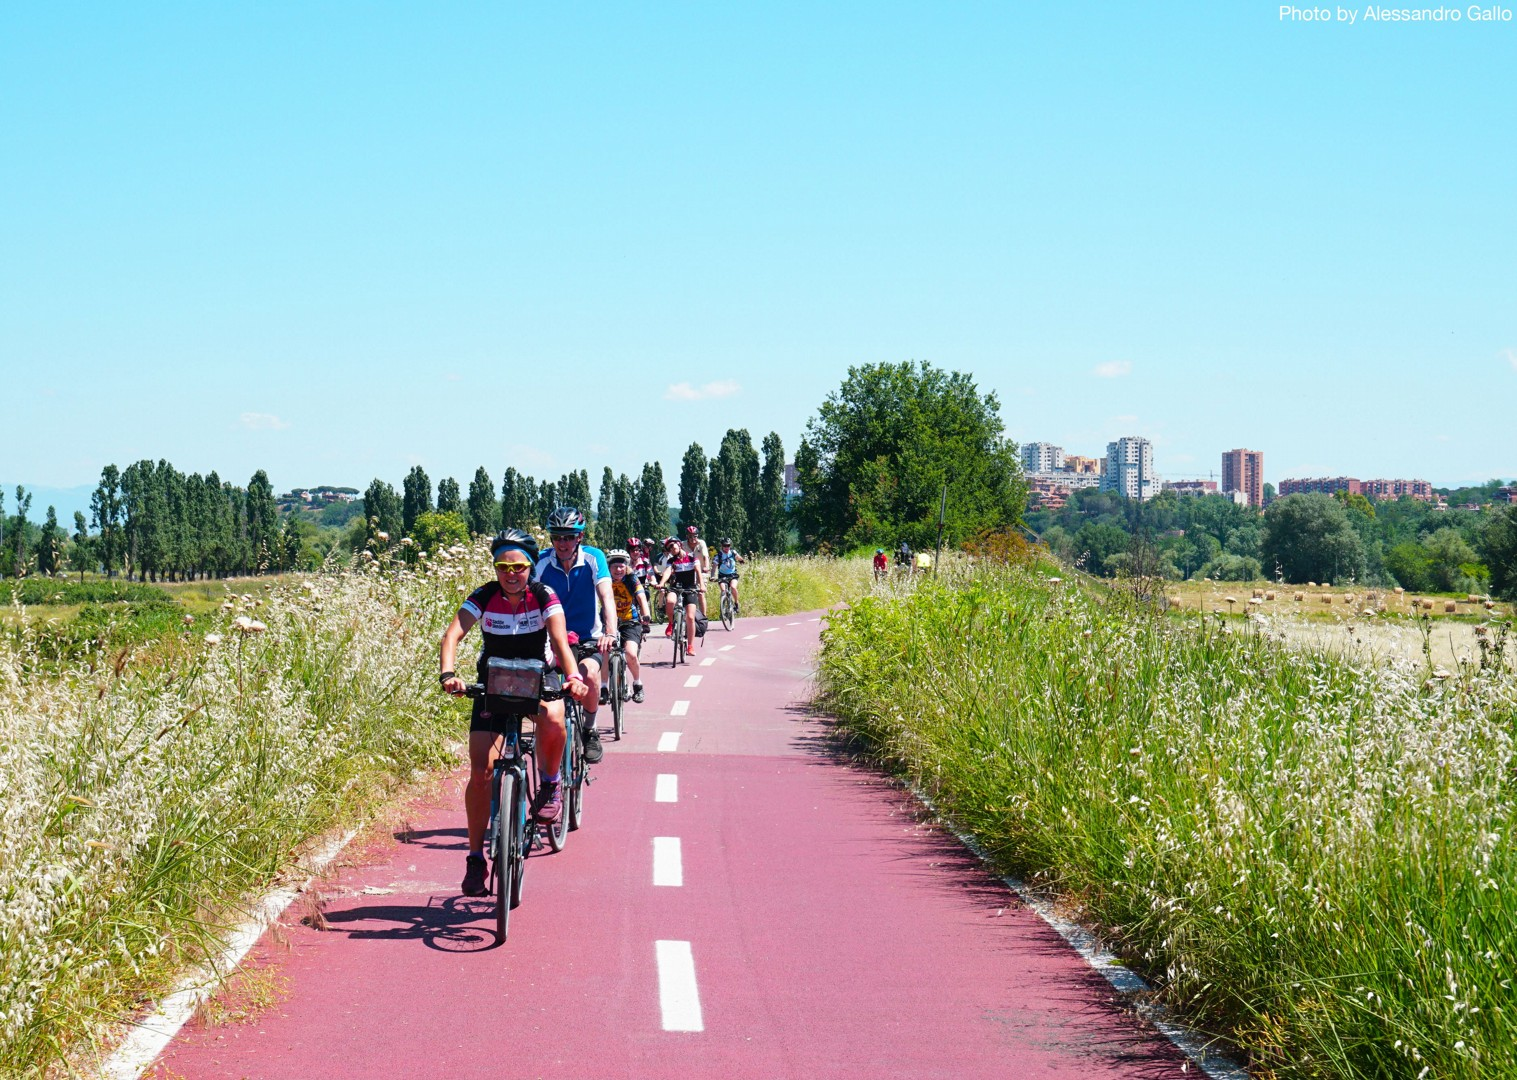 Guided-Leisure-Cycling-Holiday-Italy-Via-Francigena-Tuscany-to-Rome-on-the-way-to-rome - Italy - Via Francigena (Tuscany to Rome) - Guided Leisure Cycling Holiday - Italia Leisure and Family Cycling